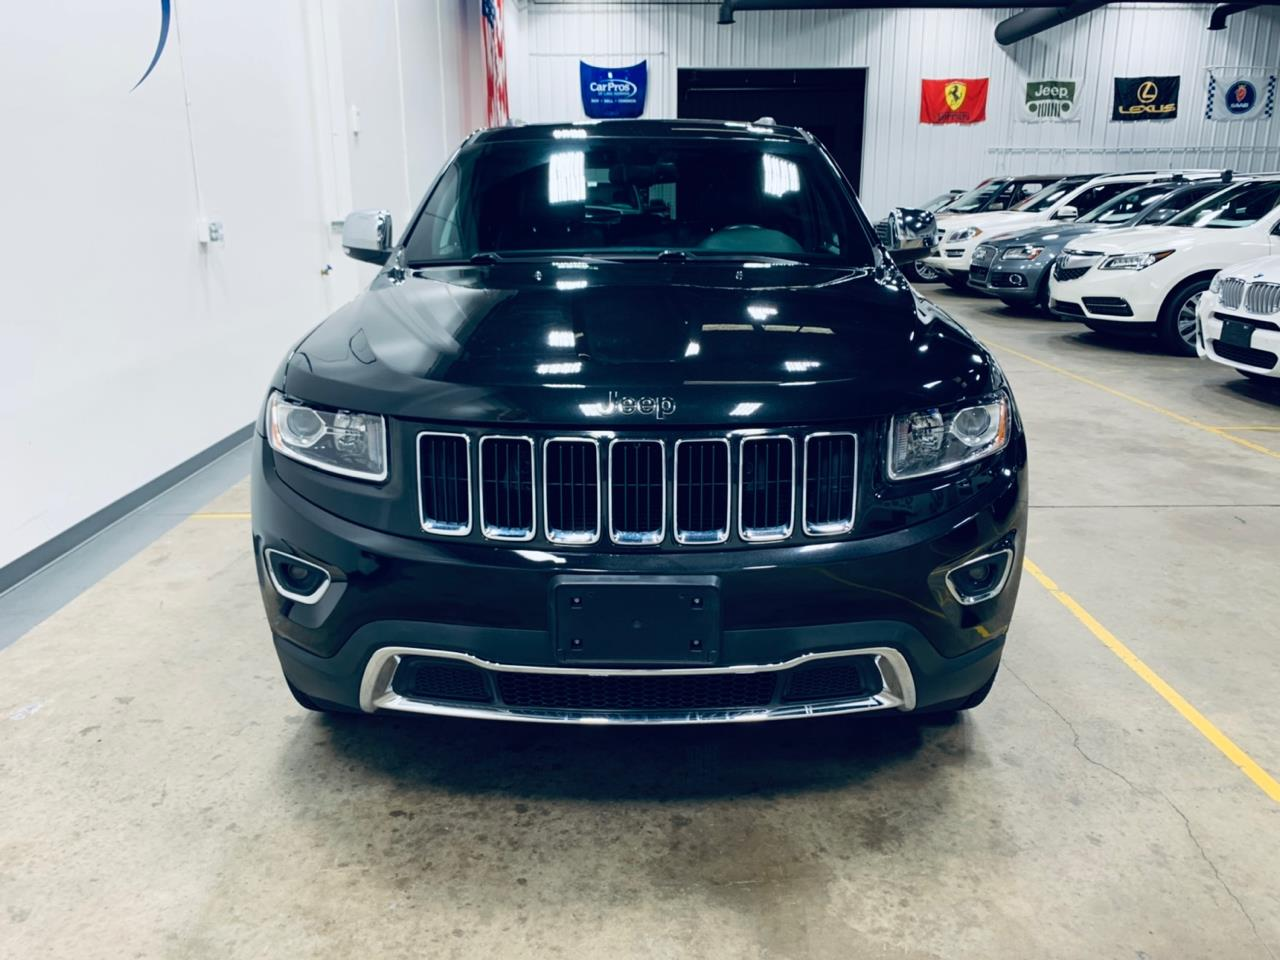 Large Picture of '15 Grand Cherokee located in Mooresville North Carolina - $26,240.00 Offered by Car Pros of Lake Norman - QK7I